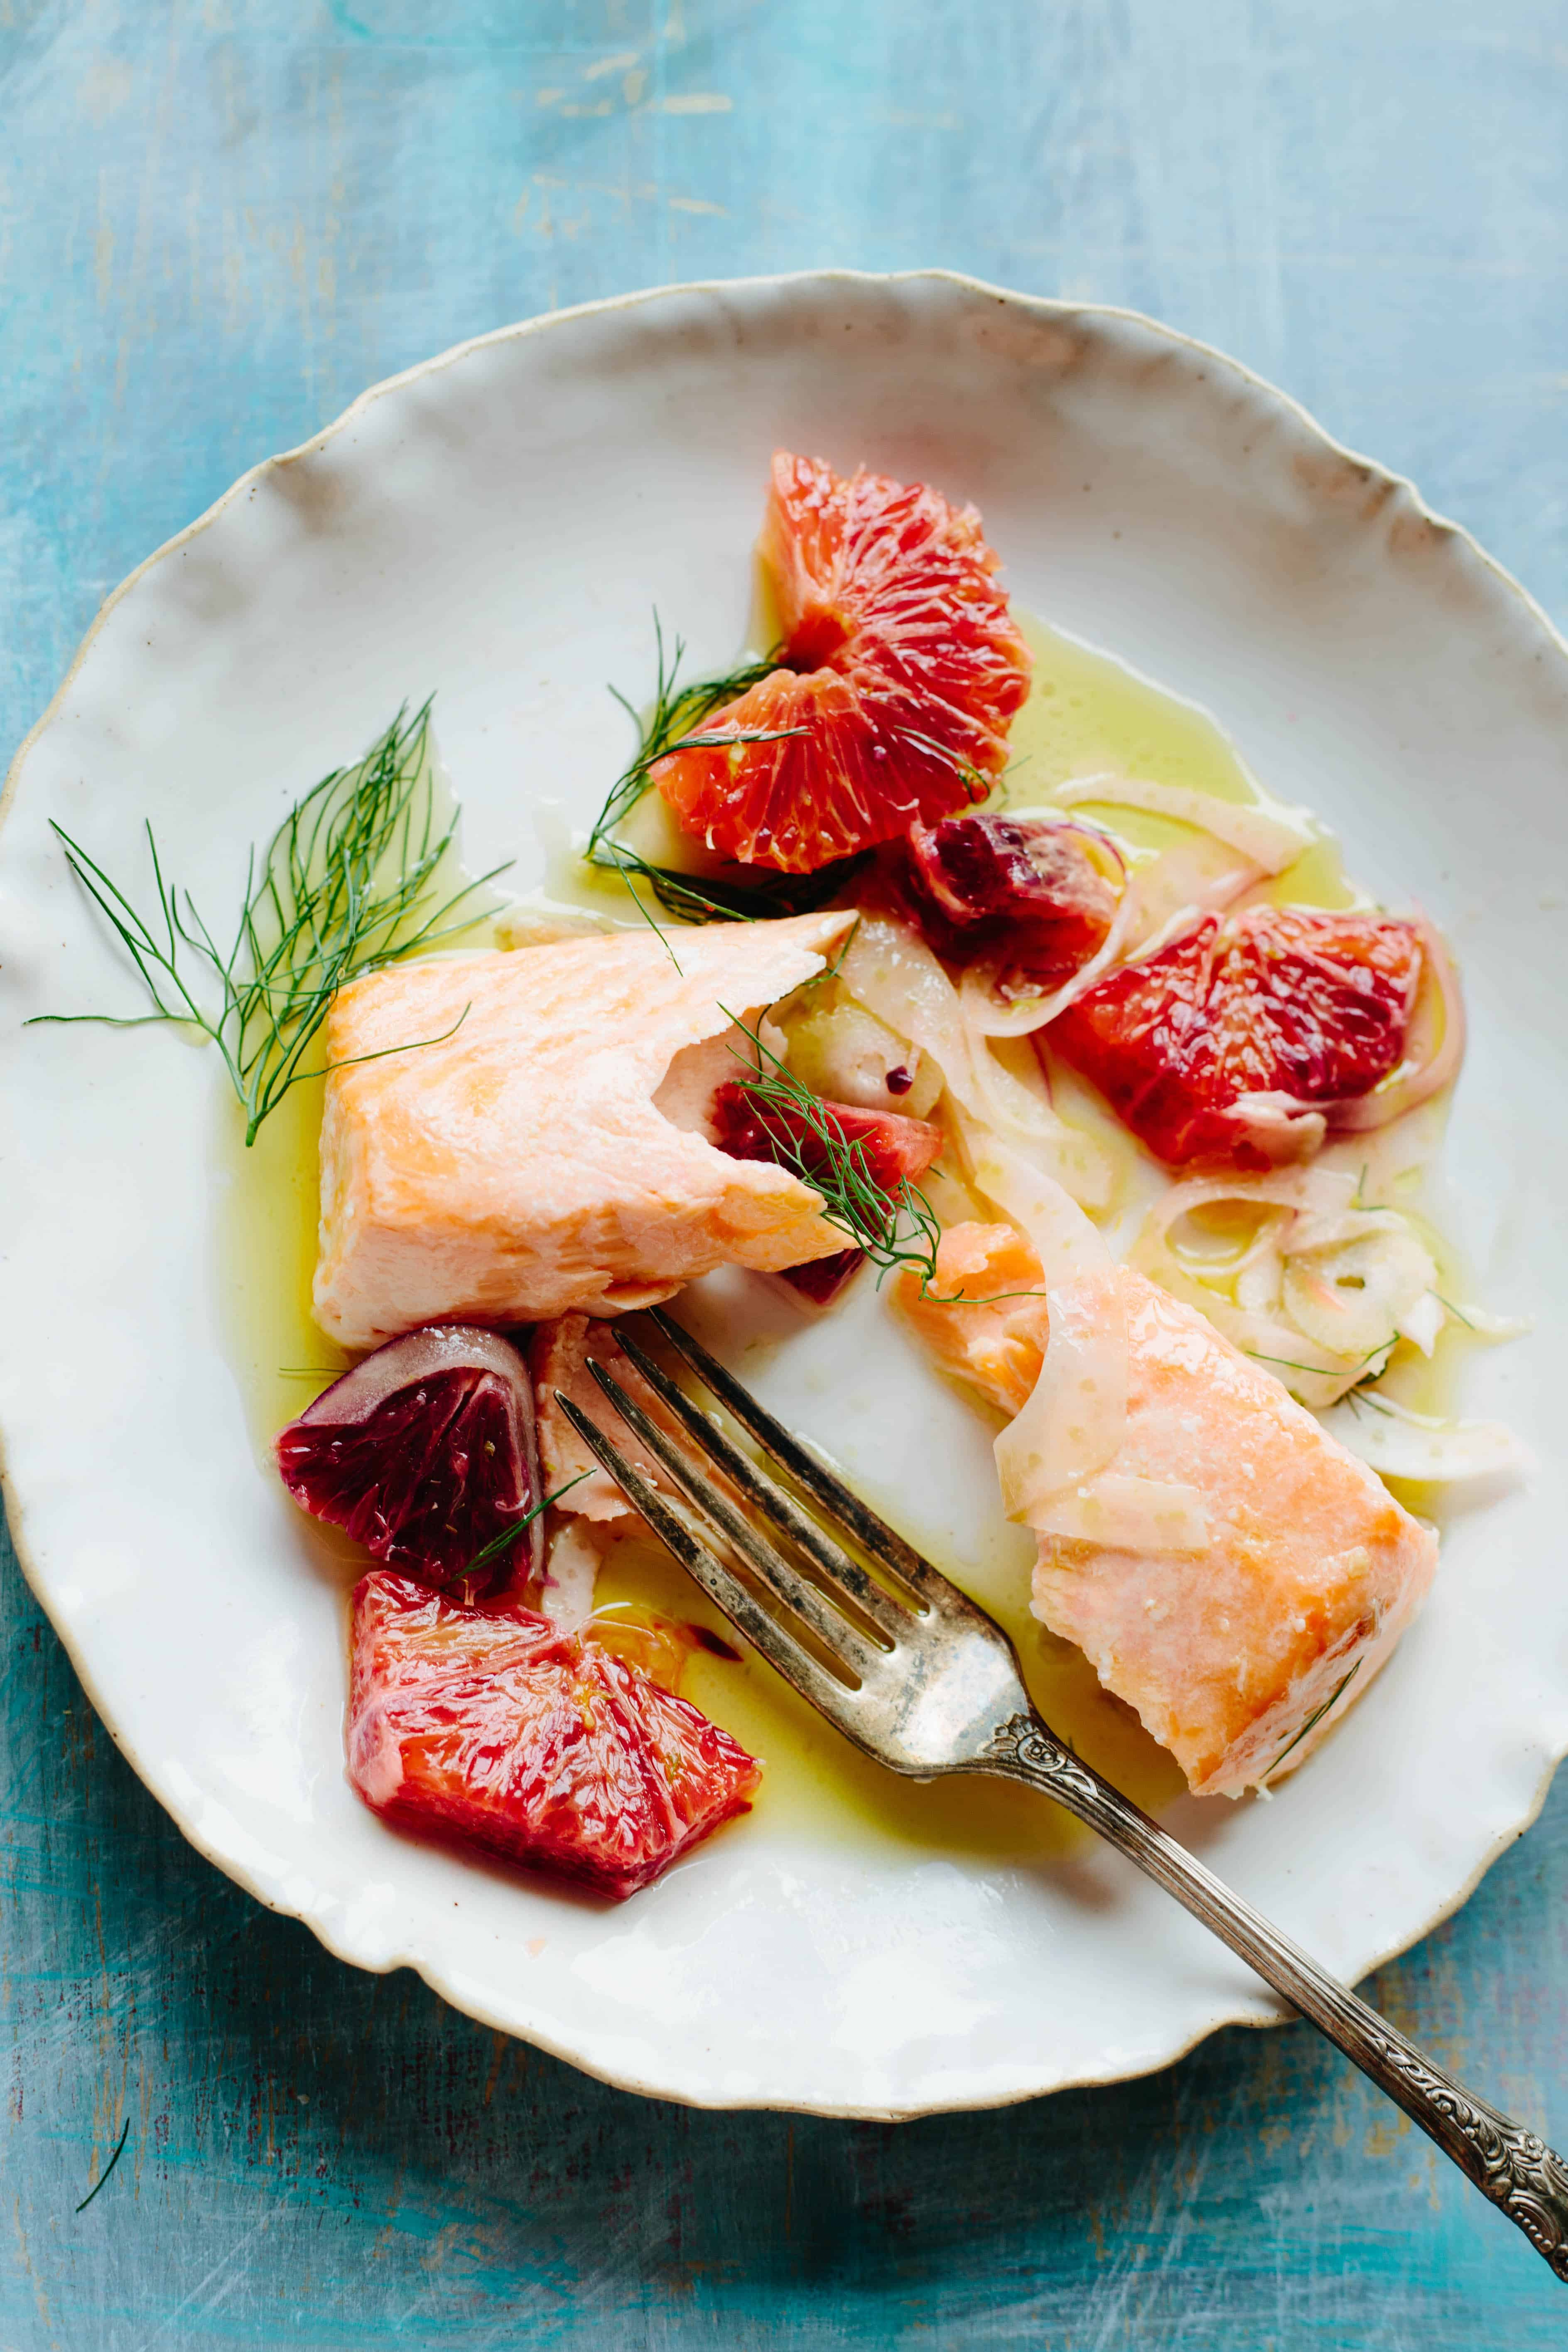 Top view of a salmon fillet flaked in two surrounded by citrus slices, dill, and oil.